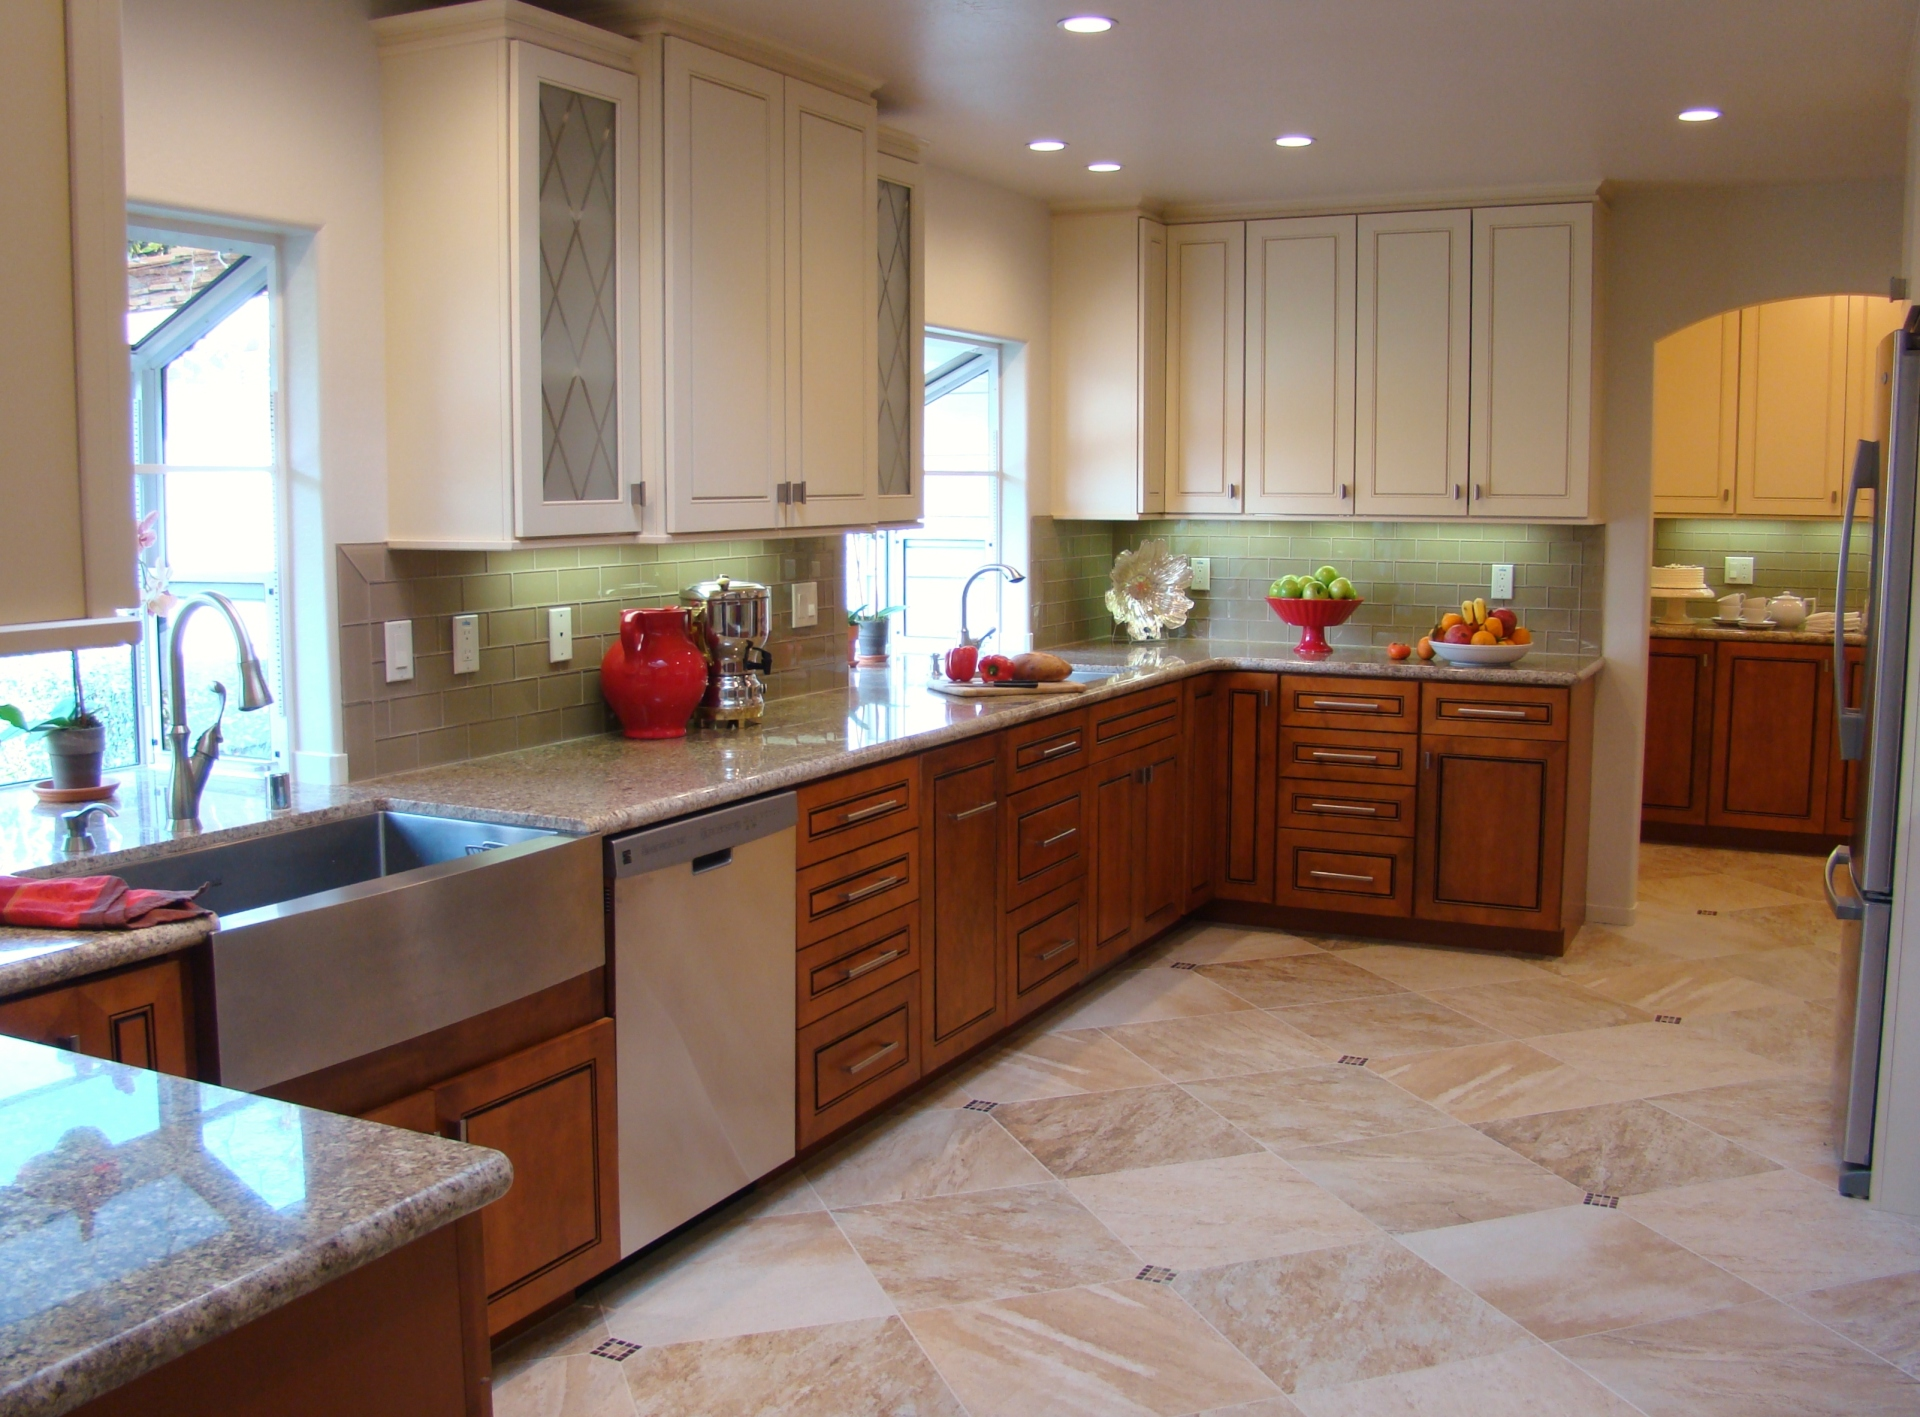 Fiorito Interior Design, interior design, remodel, kitchen, light and dark cabinetry, granite counter